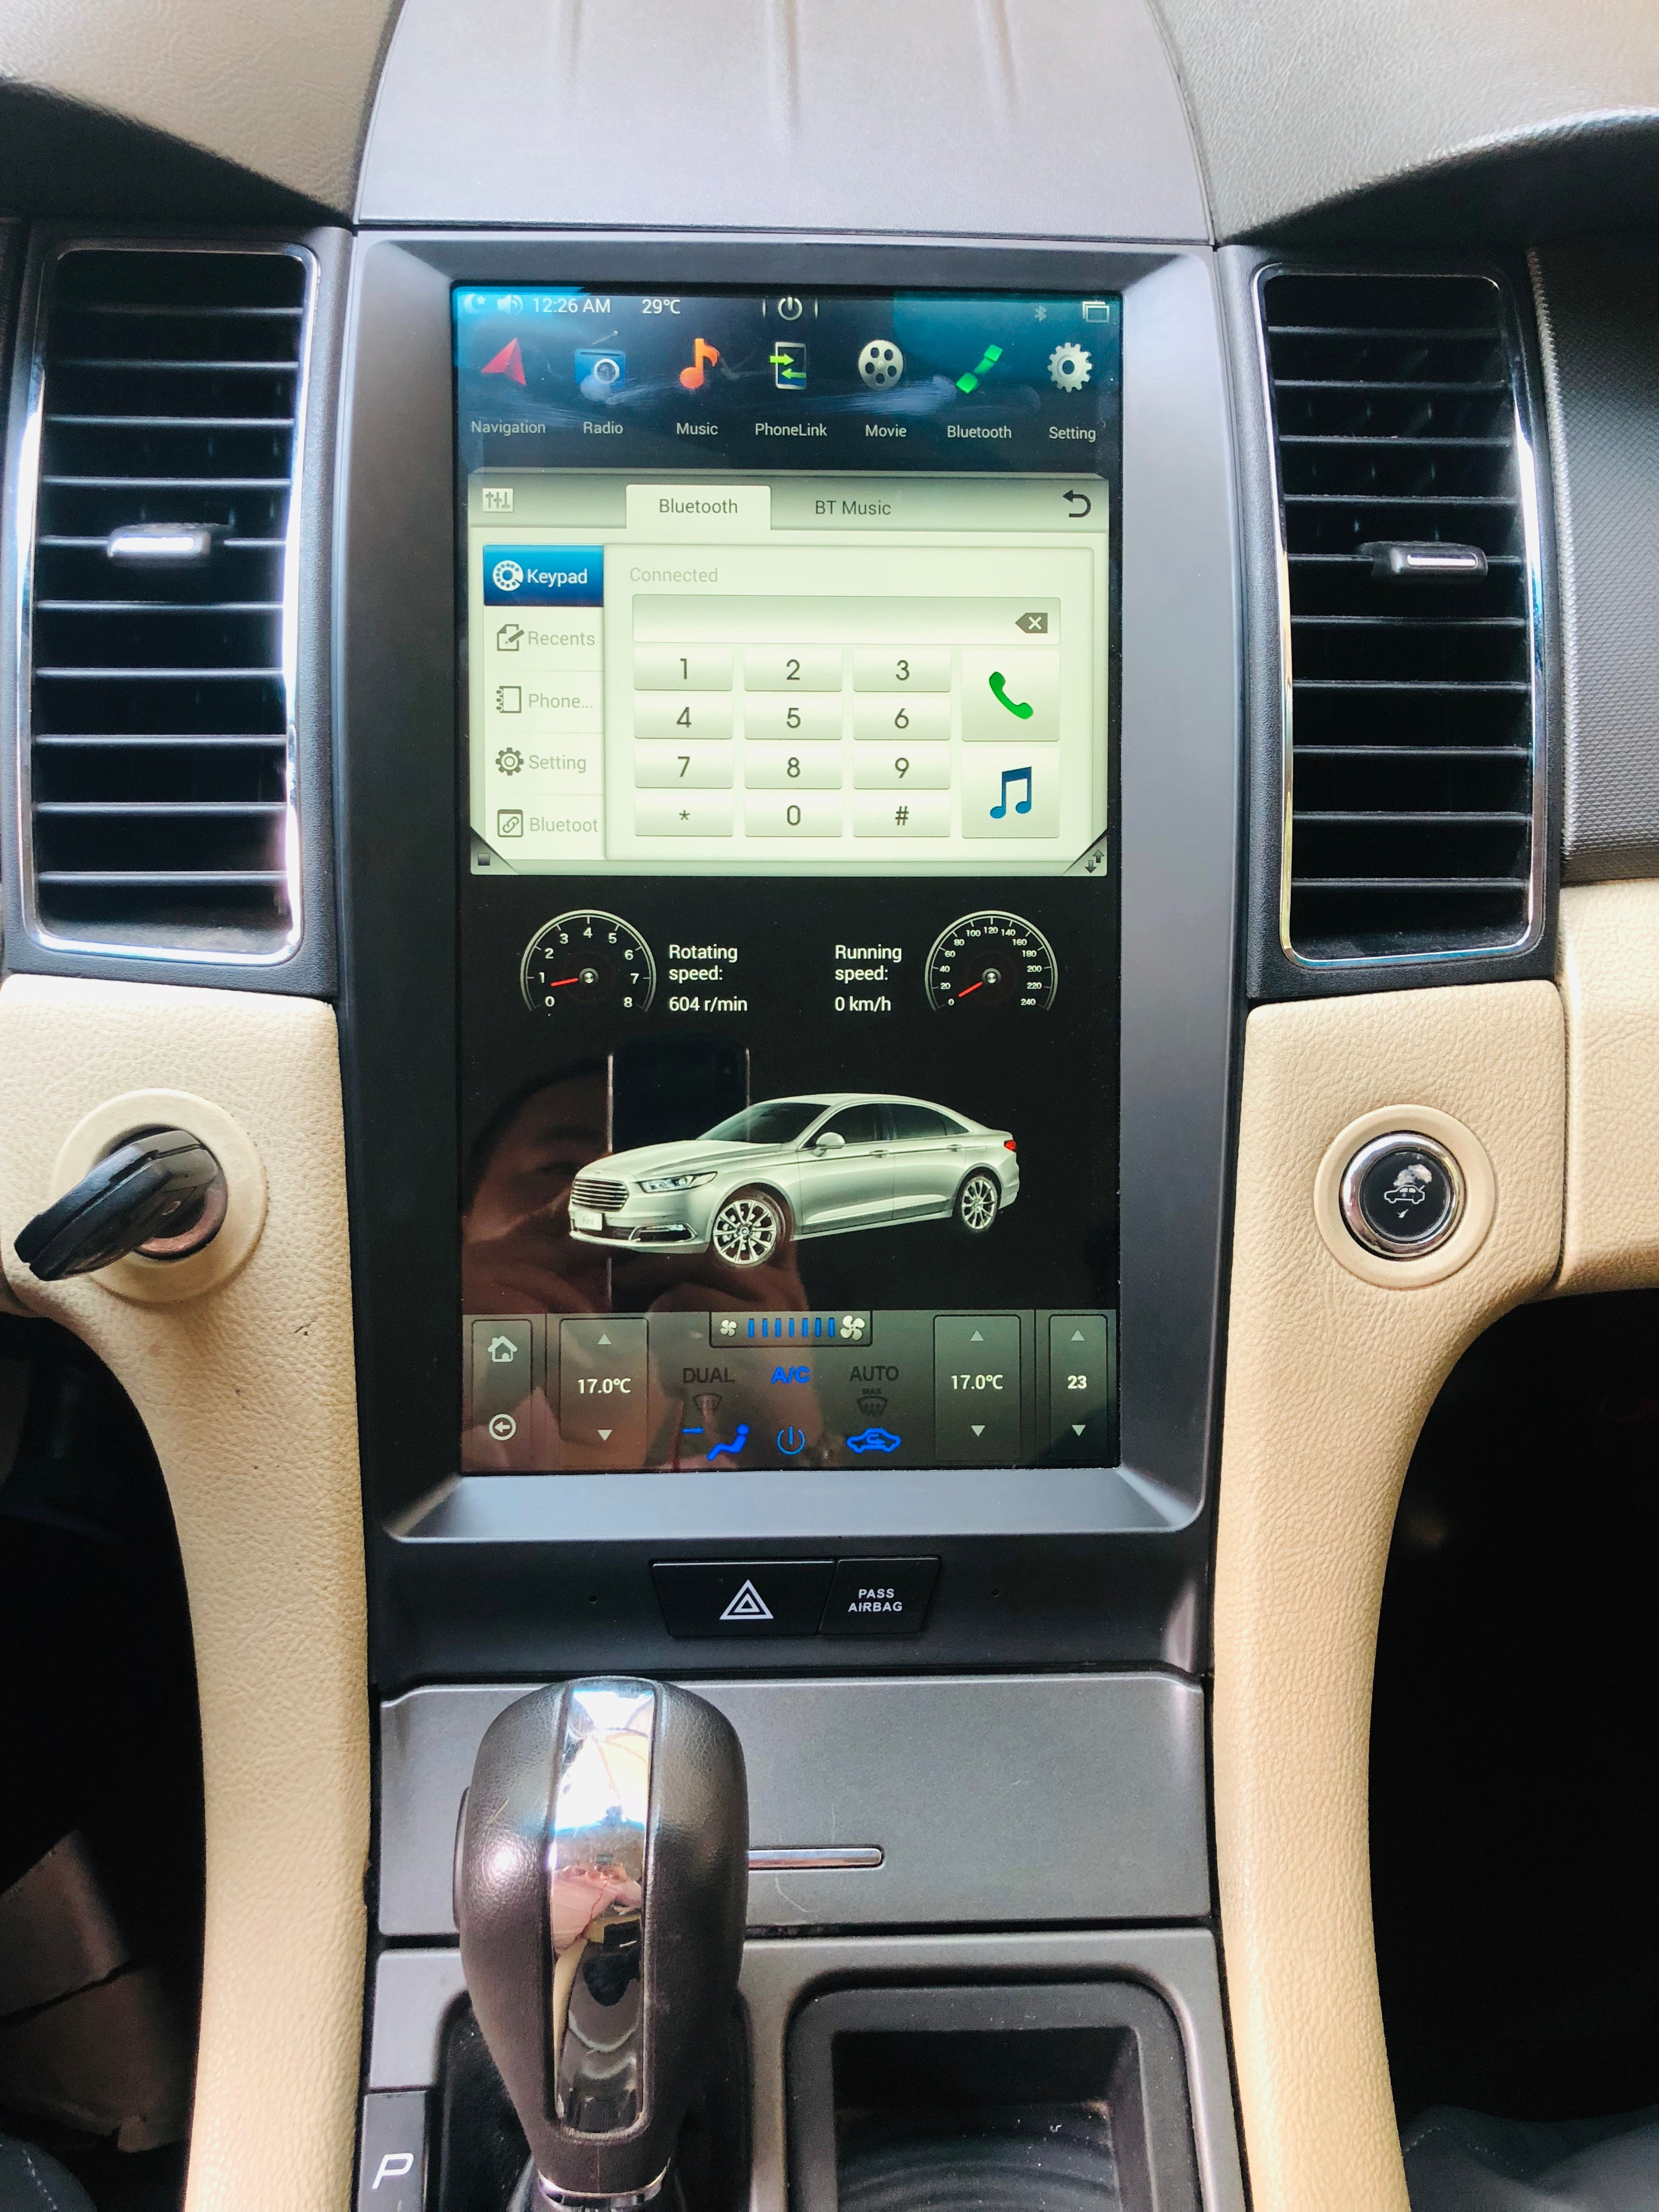 "Ford Taurus 2013 - 2019 13.3"" Vertical Screen Android Radio Tesla Style with 2K Resolution"